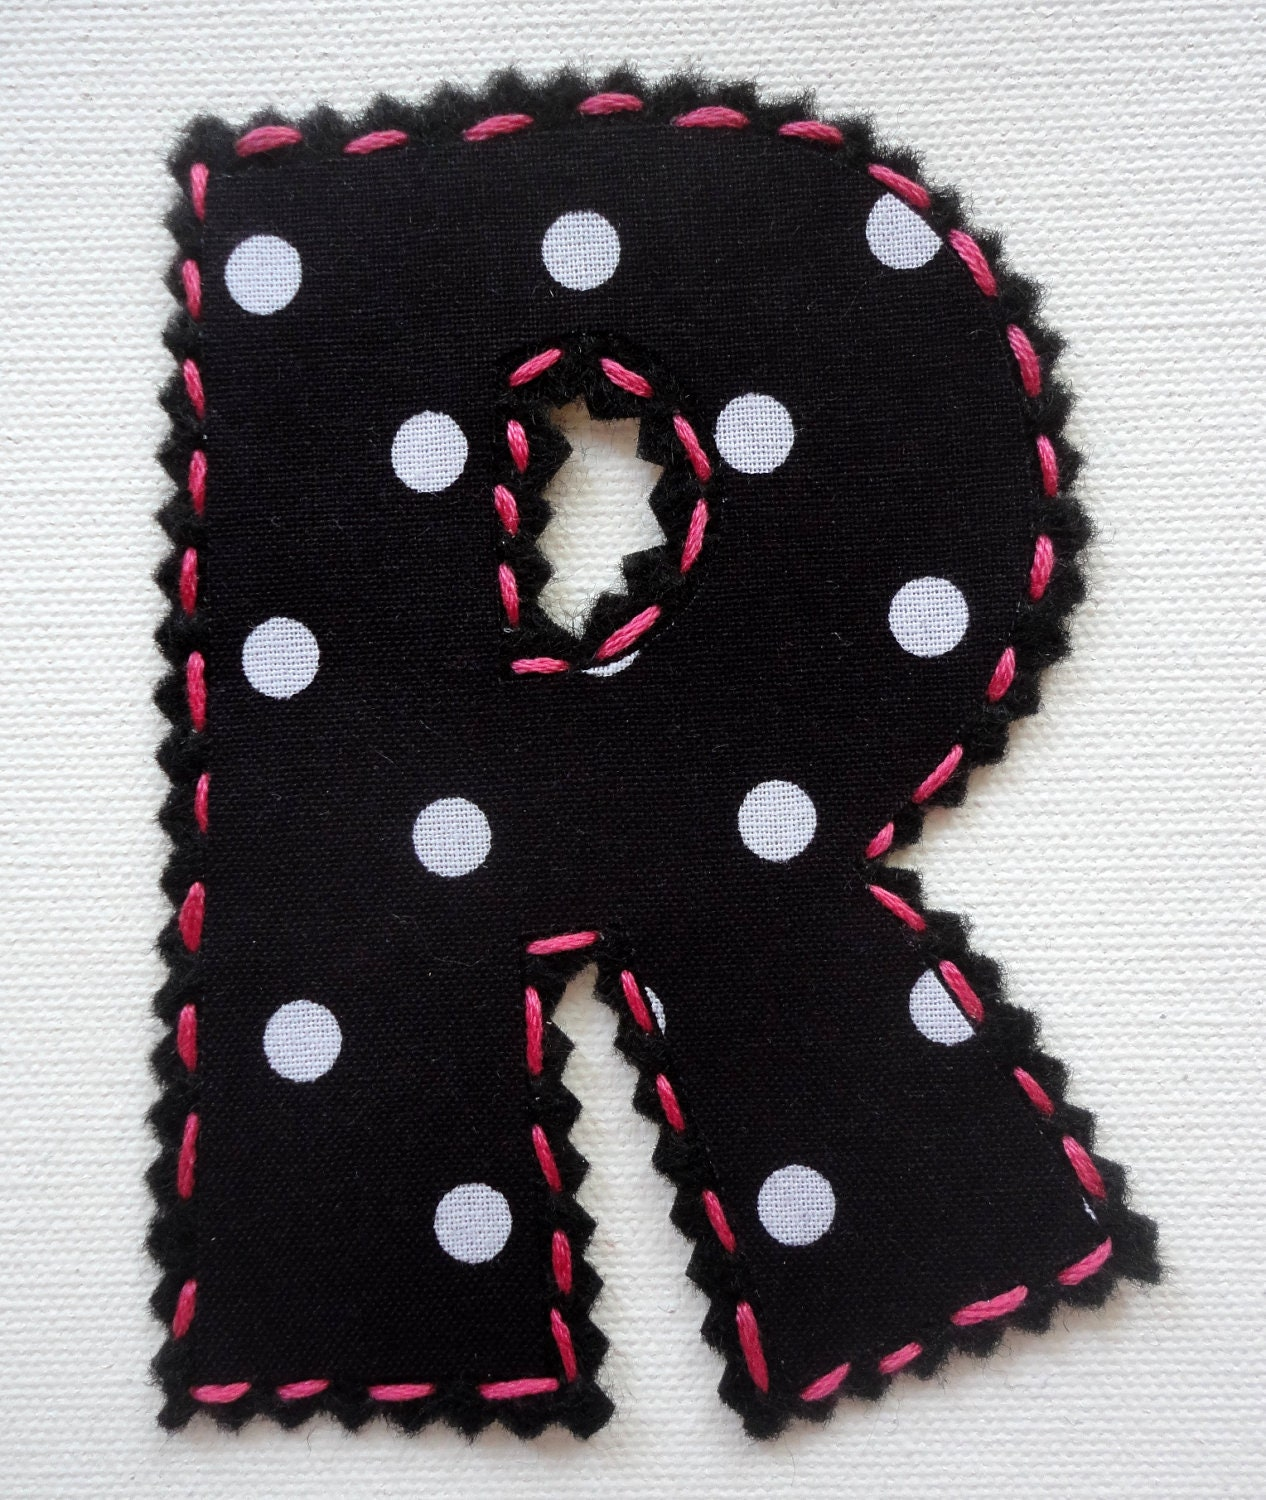 6 inch stitch fabric iron on letter With 6 inch iron on letters